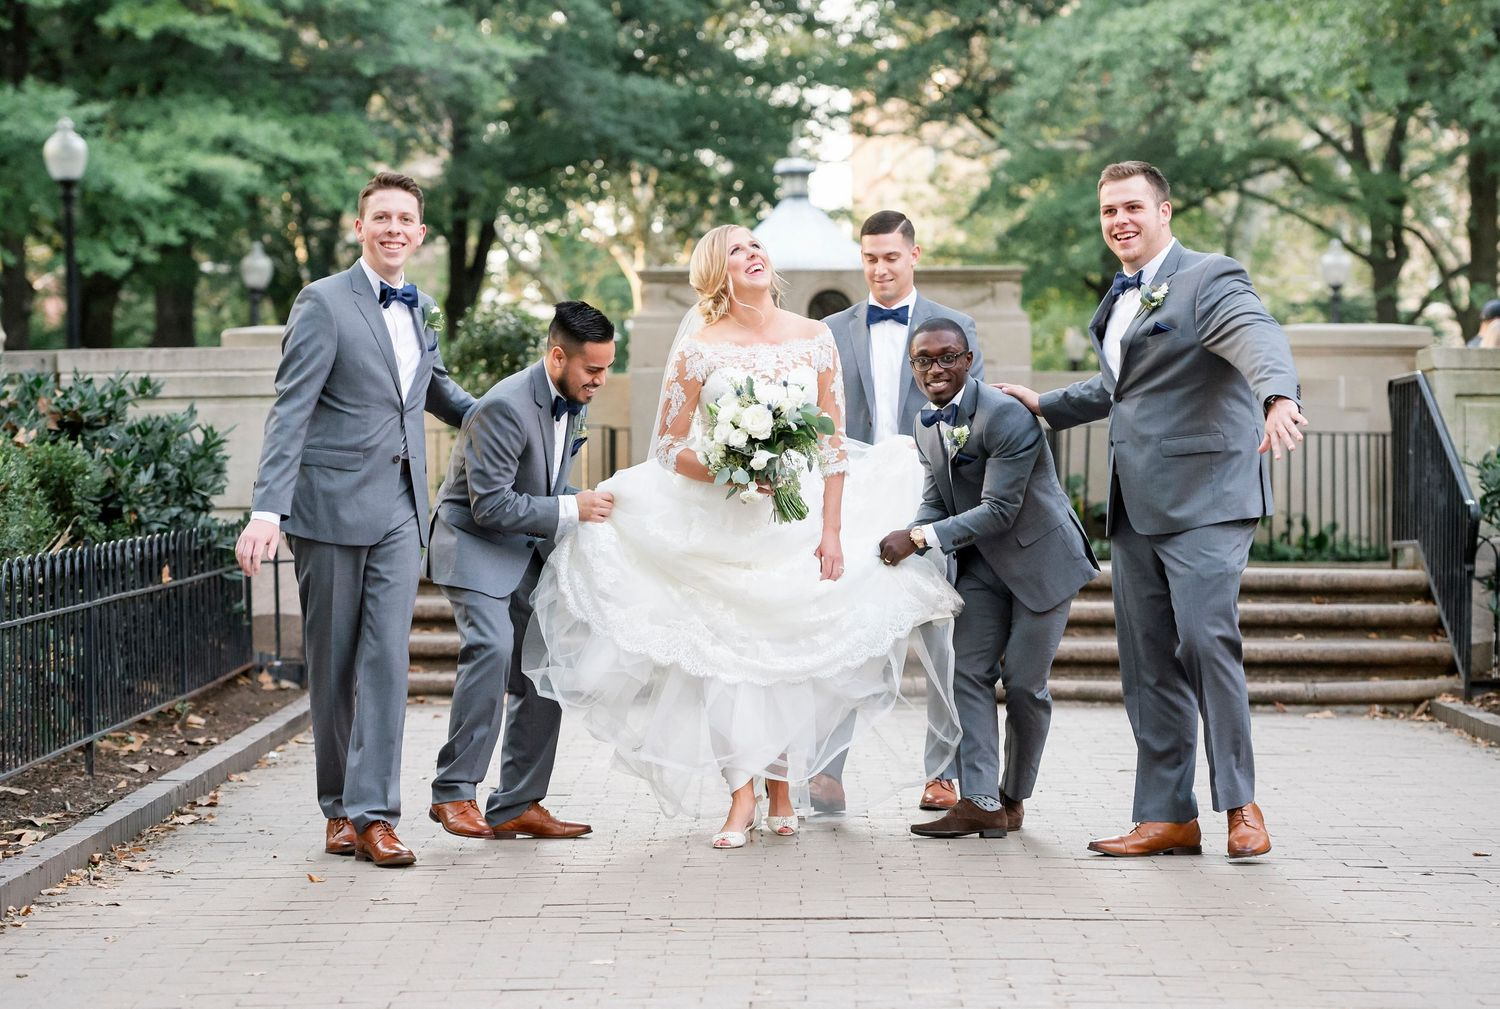 Groomsmen escorting the bride in Rittenhouse Square in Philadelphia